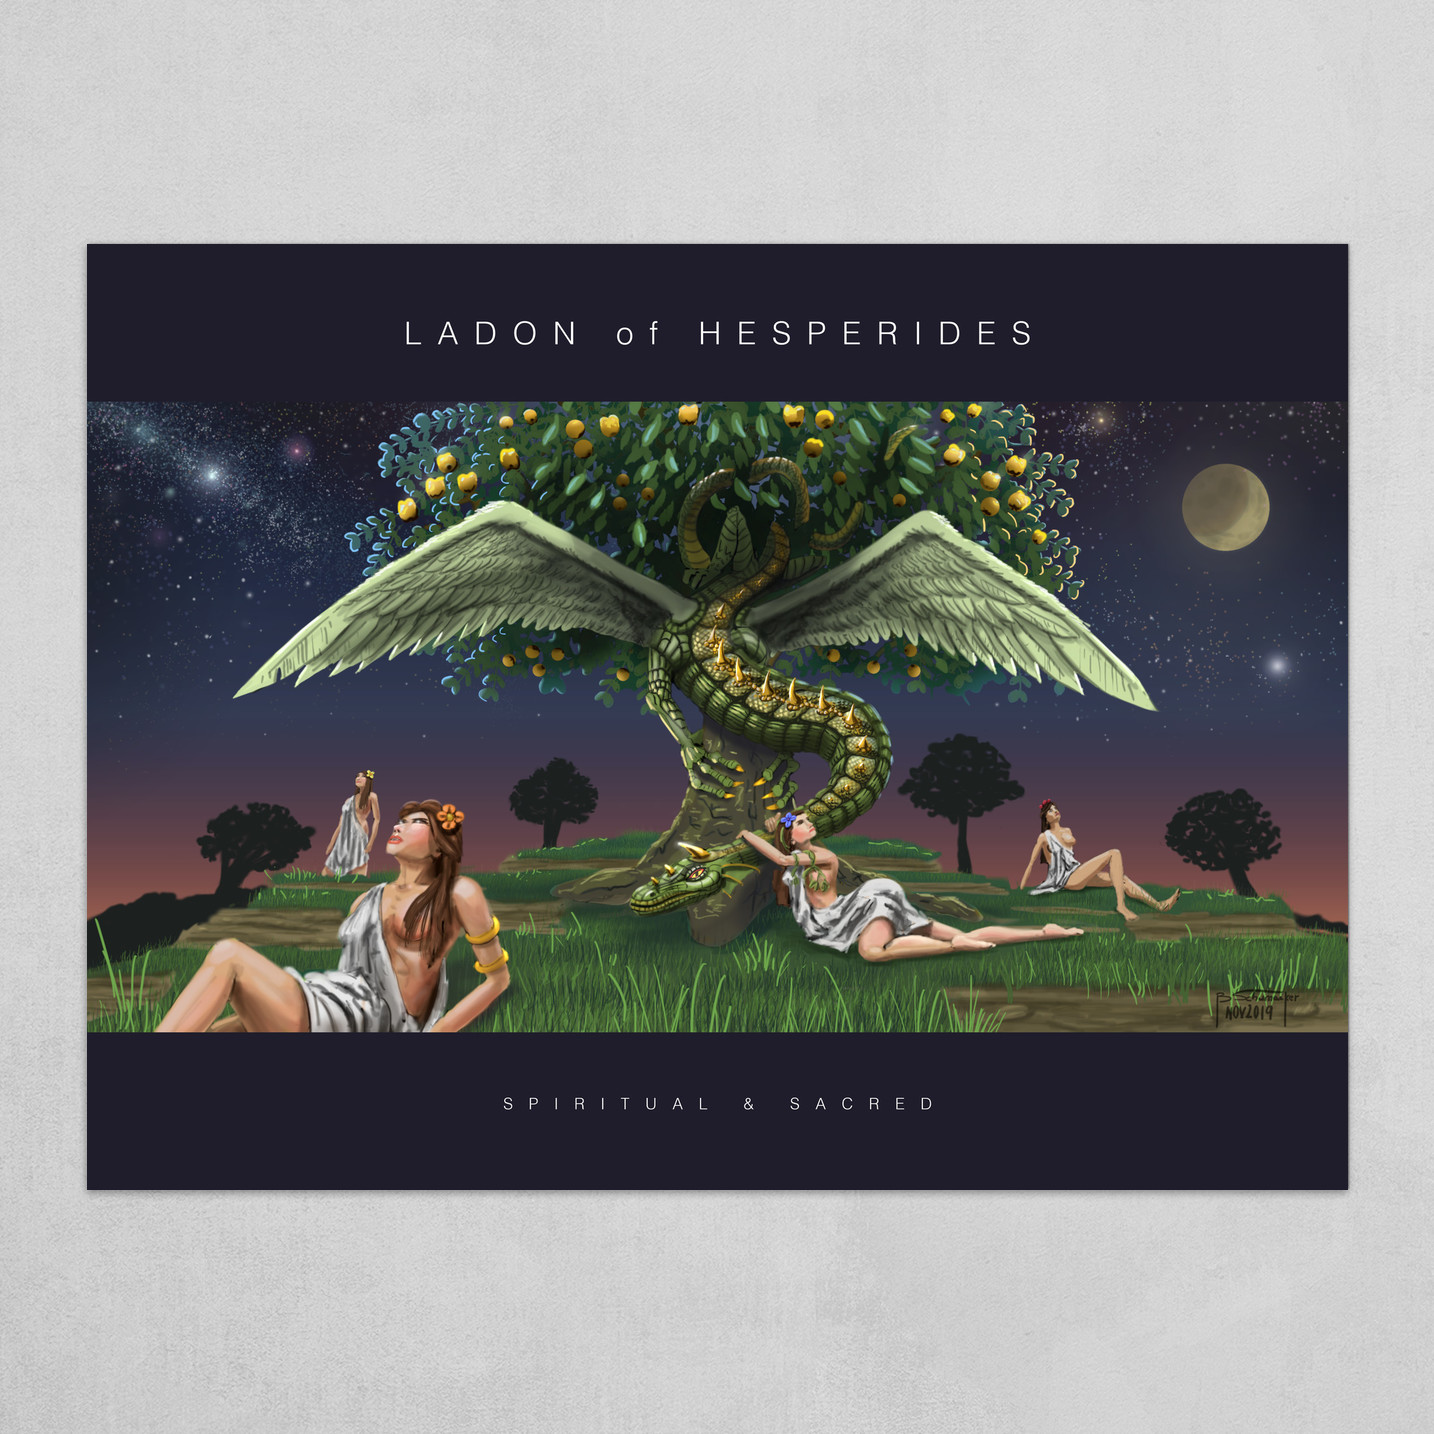 Ladon of Hesperides - Poster